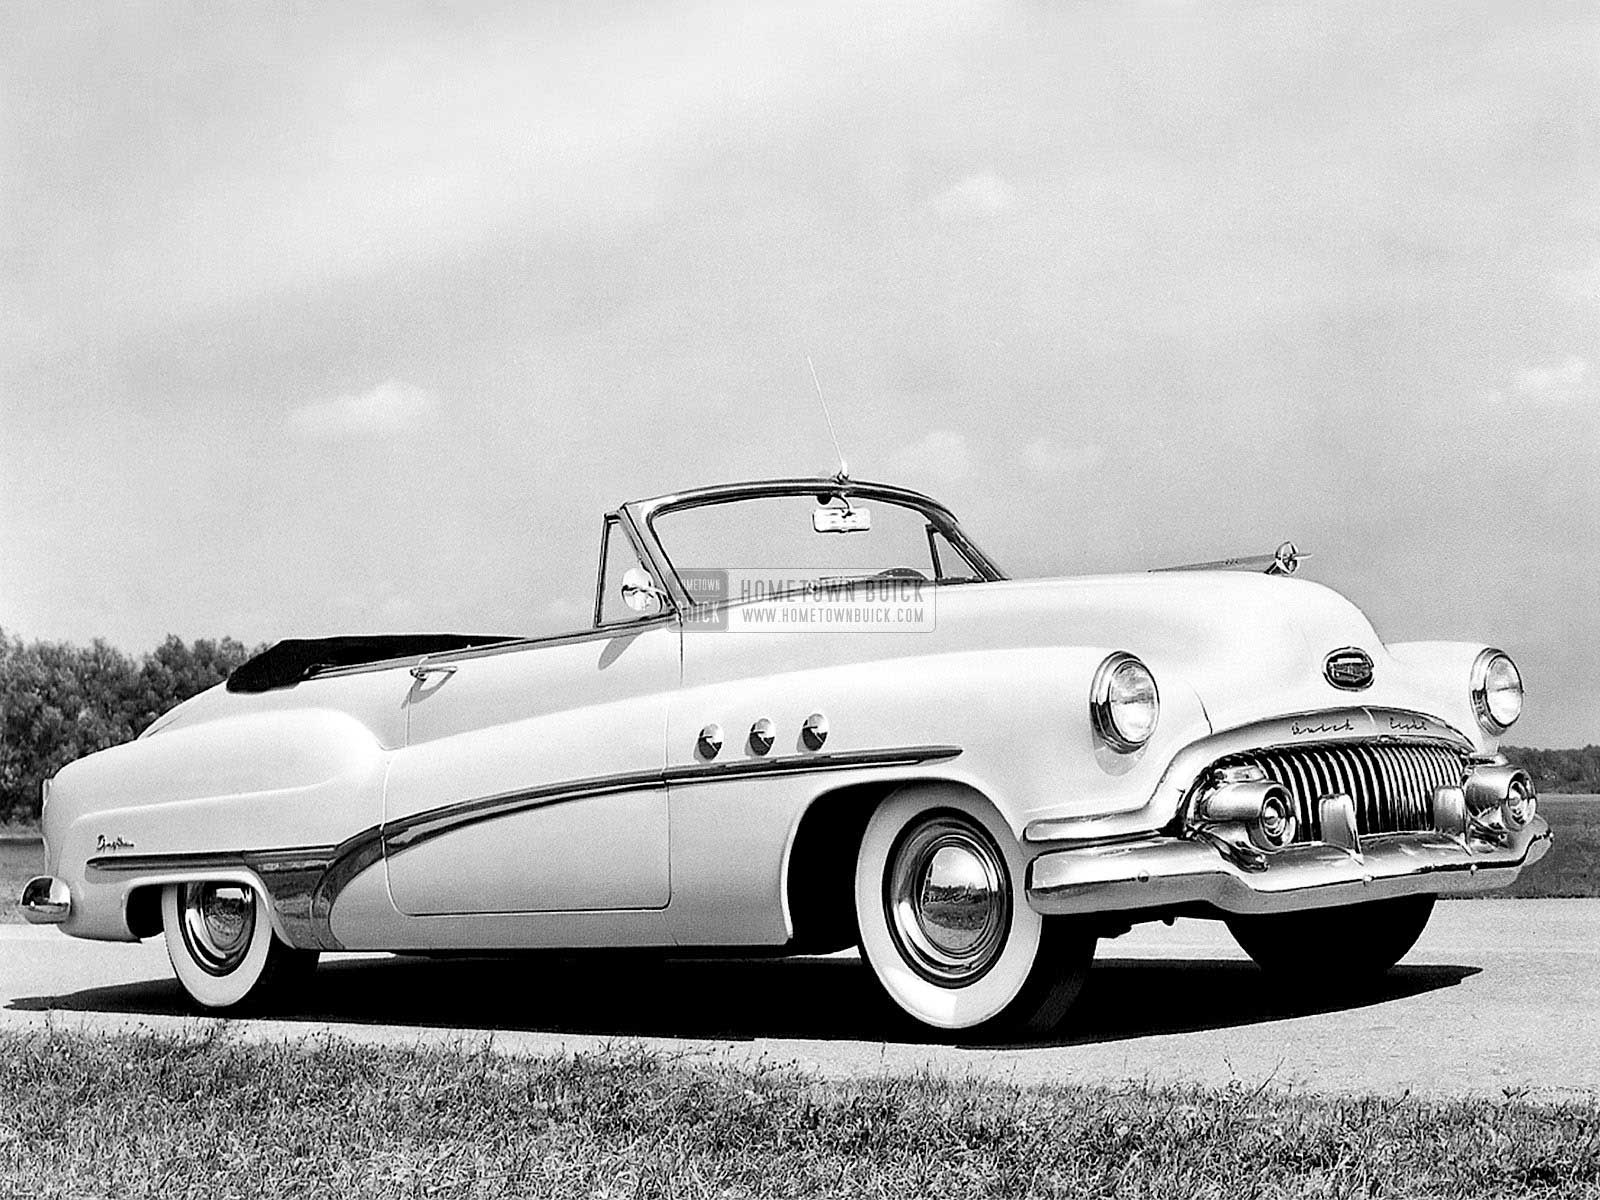 1951 Buick Model Year